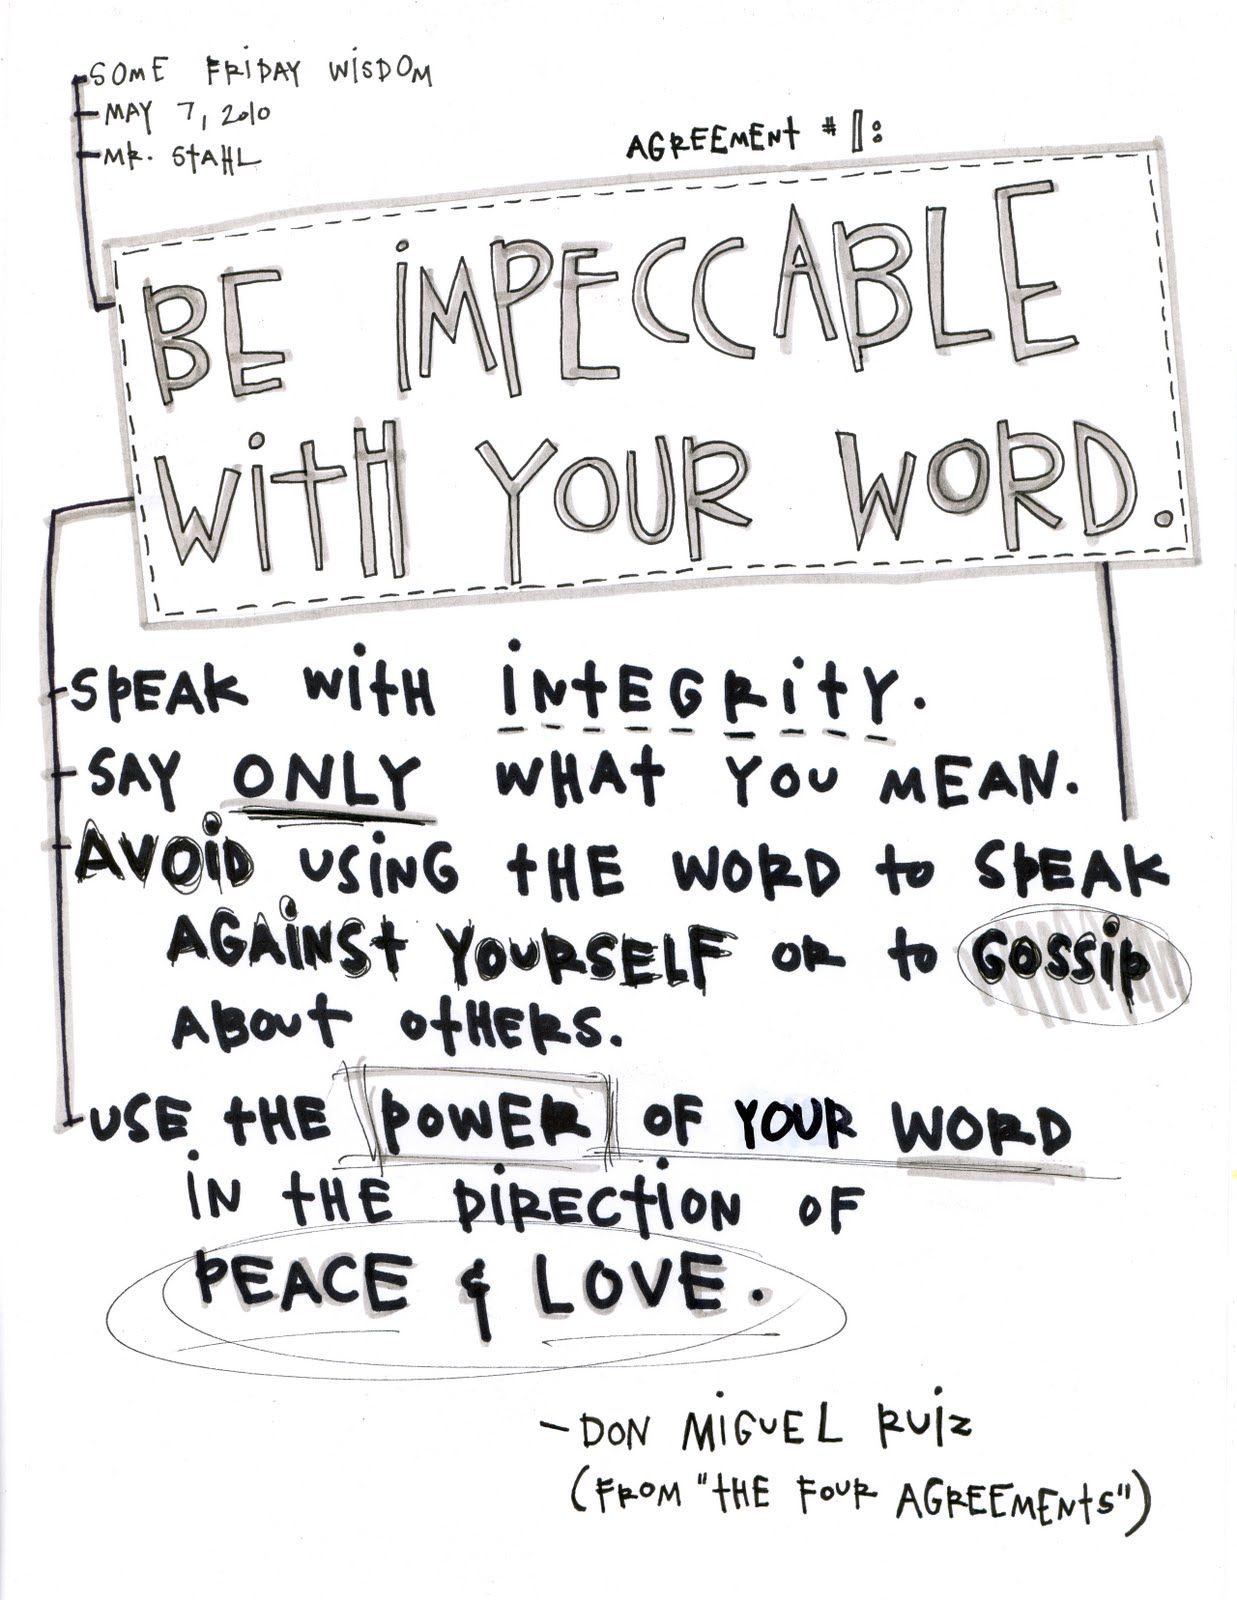 Four Agreements Quotes The Four Agreements  Wisdom Proverbs Quotes And Hard Truth